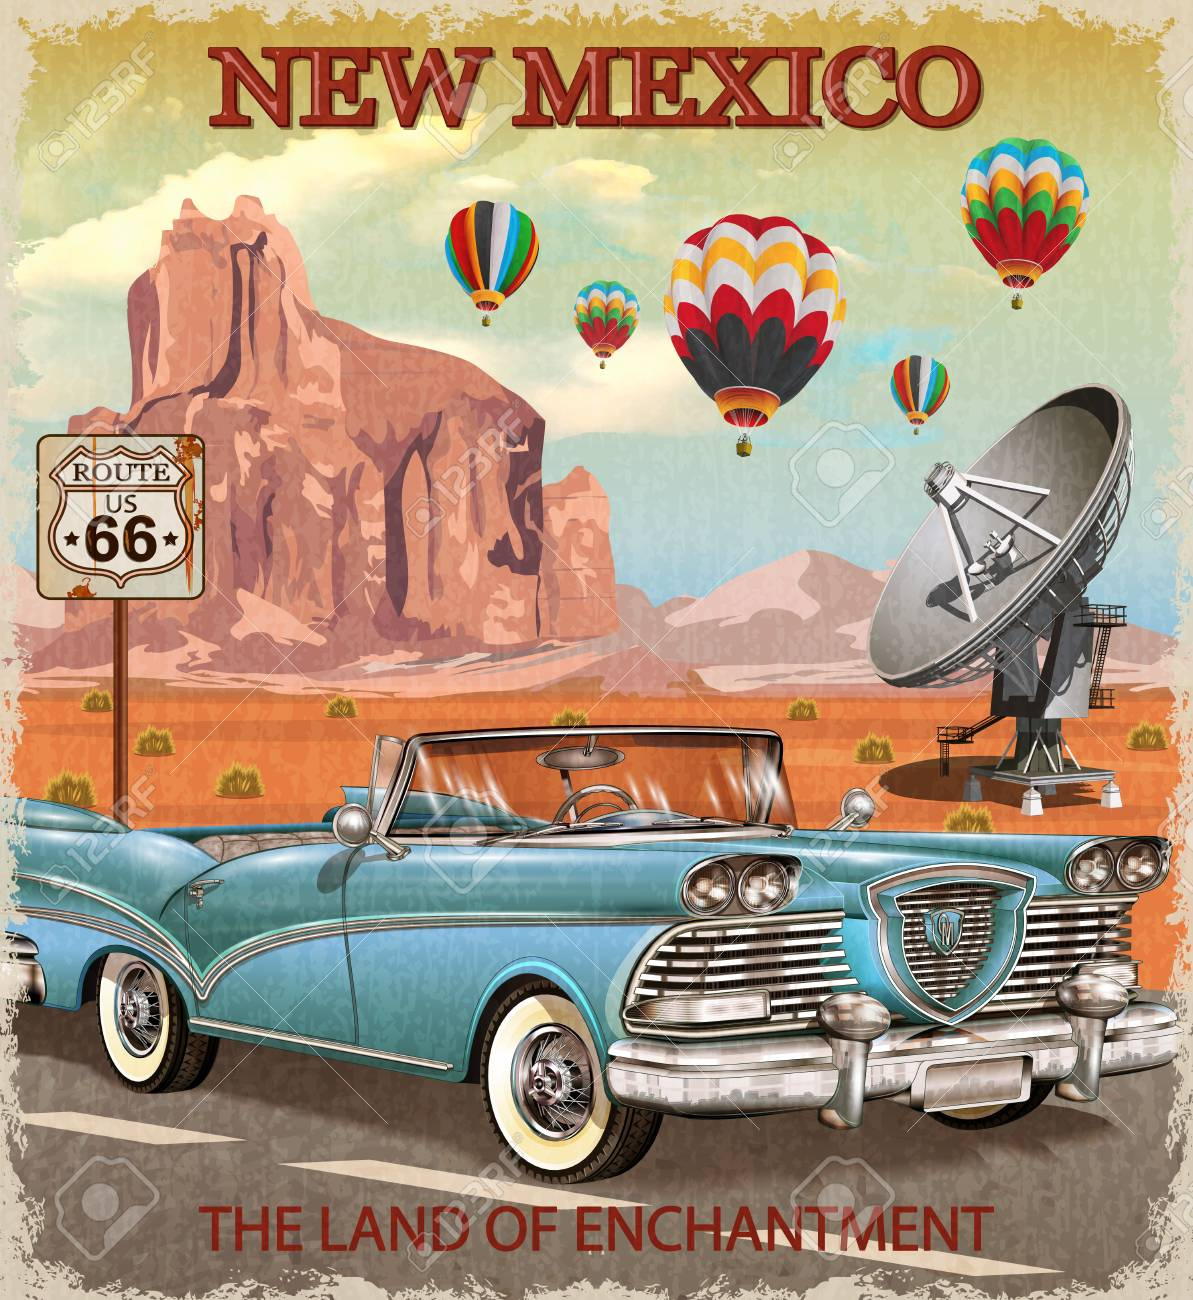 Vintage New Mexico road trip poster. - 88647938